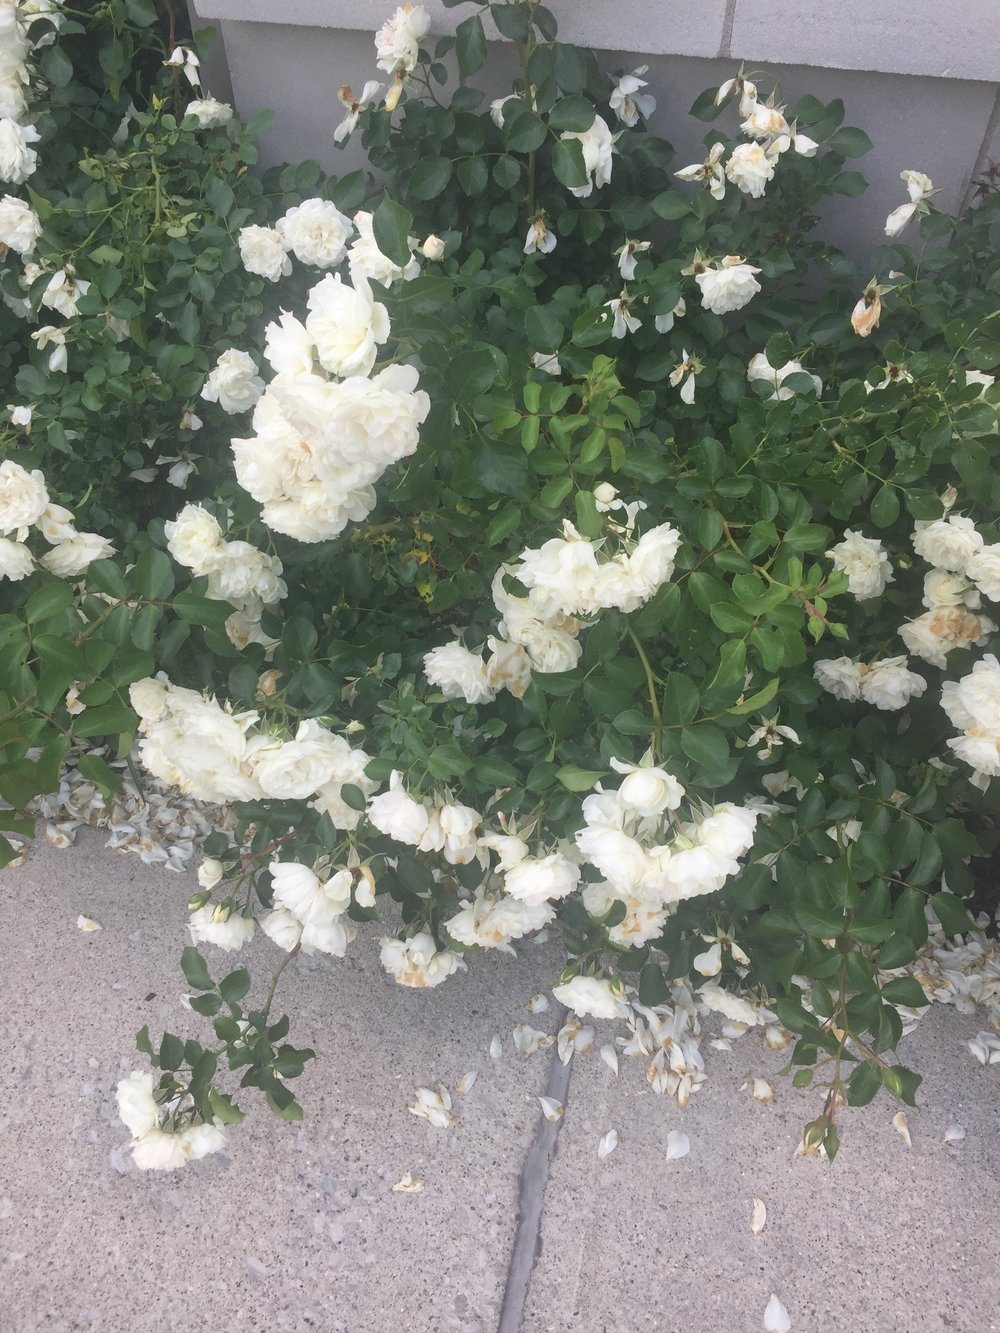 Love these roses outside Macy's! They're so blowsy pretty.